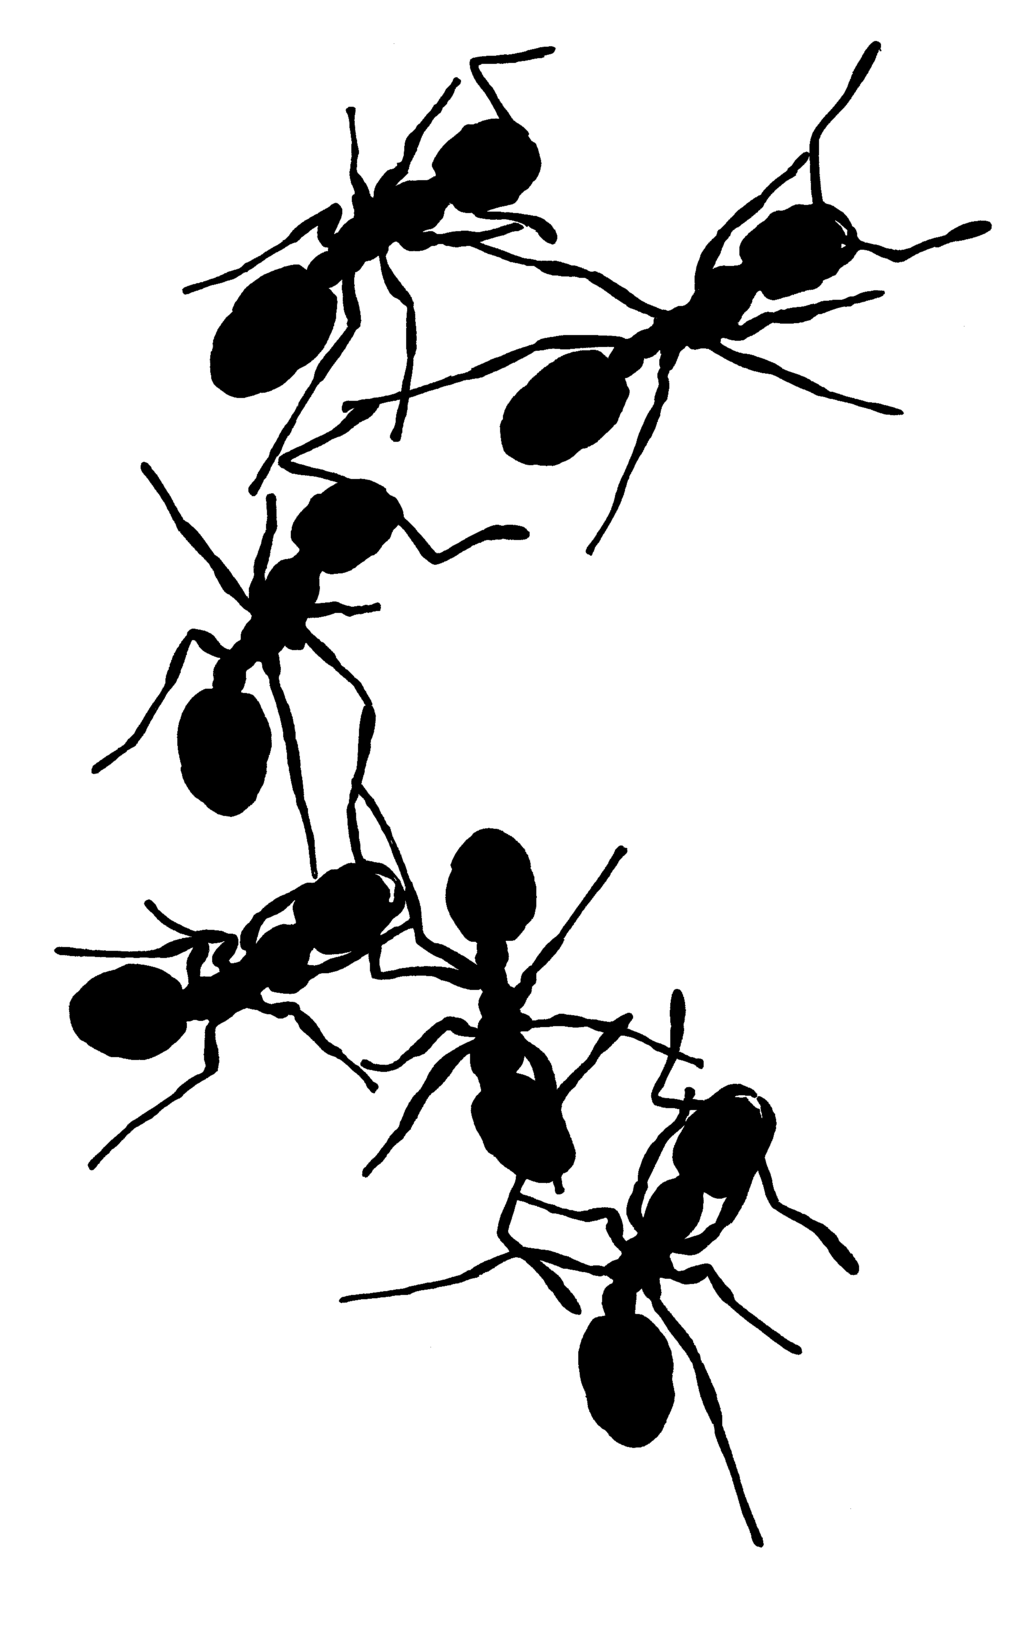 Shaow clipart ant Ant Ant Silhouette photo#22 silhouette